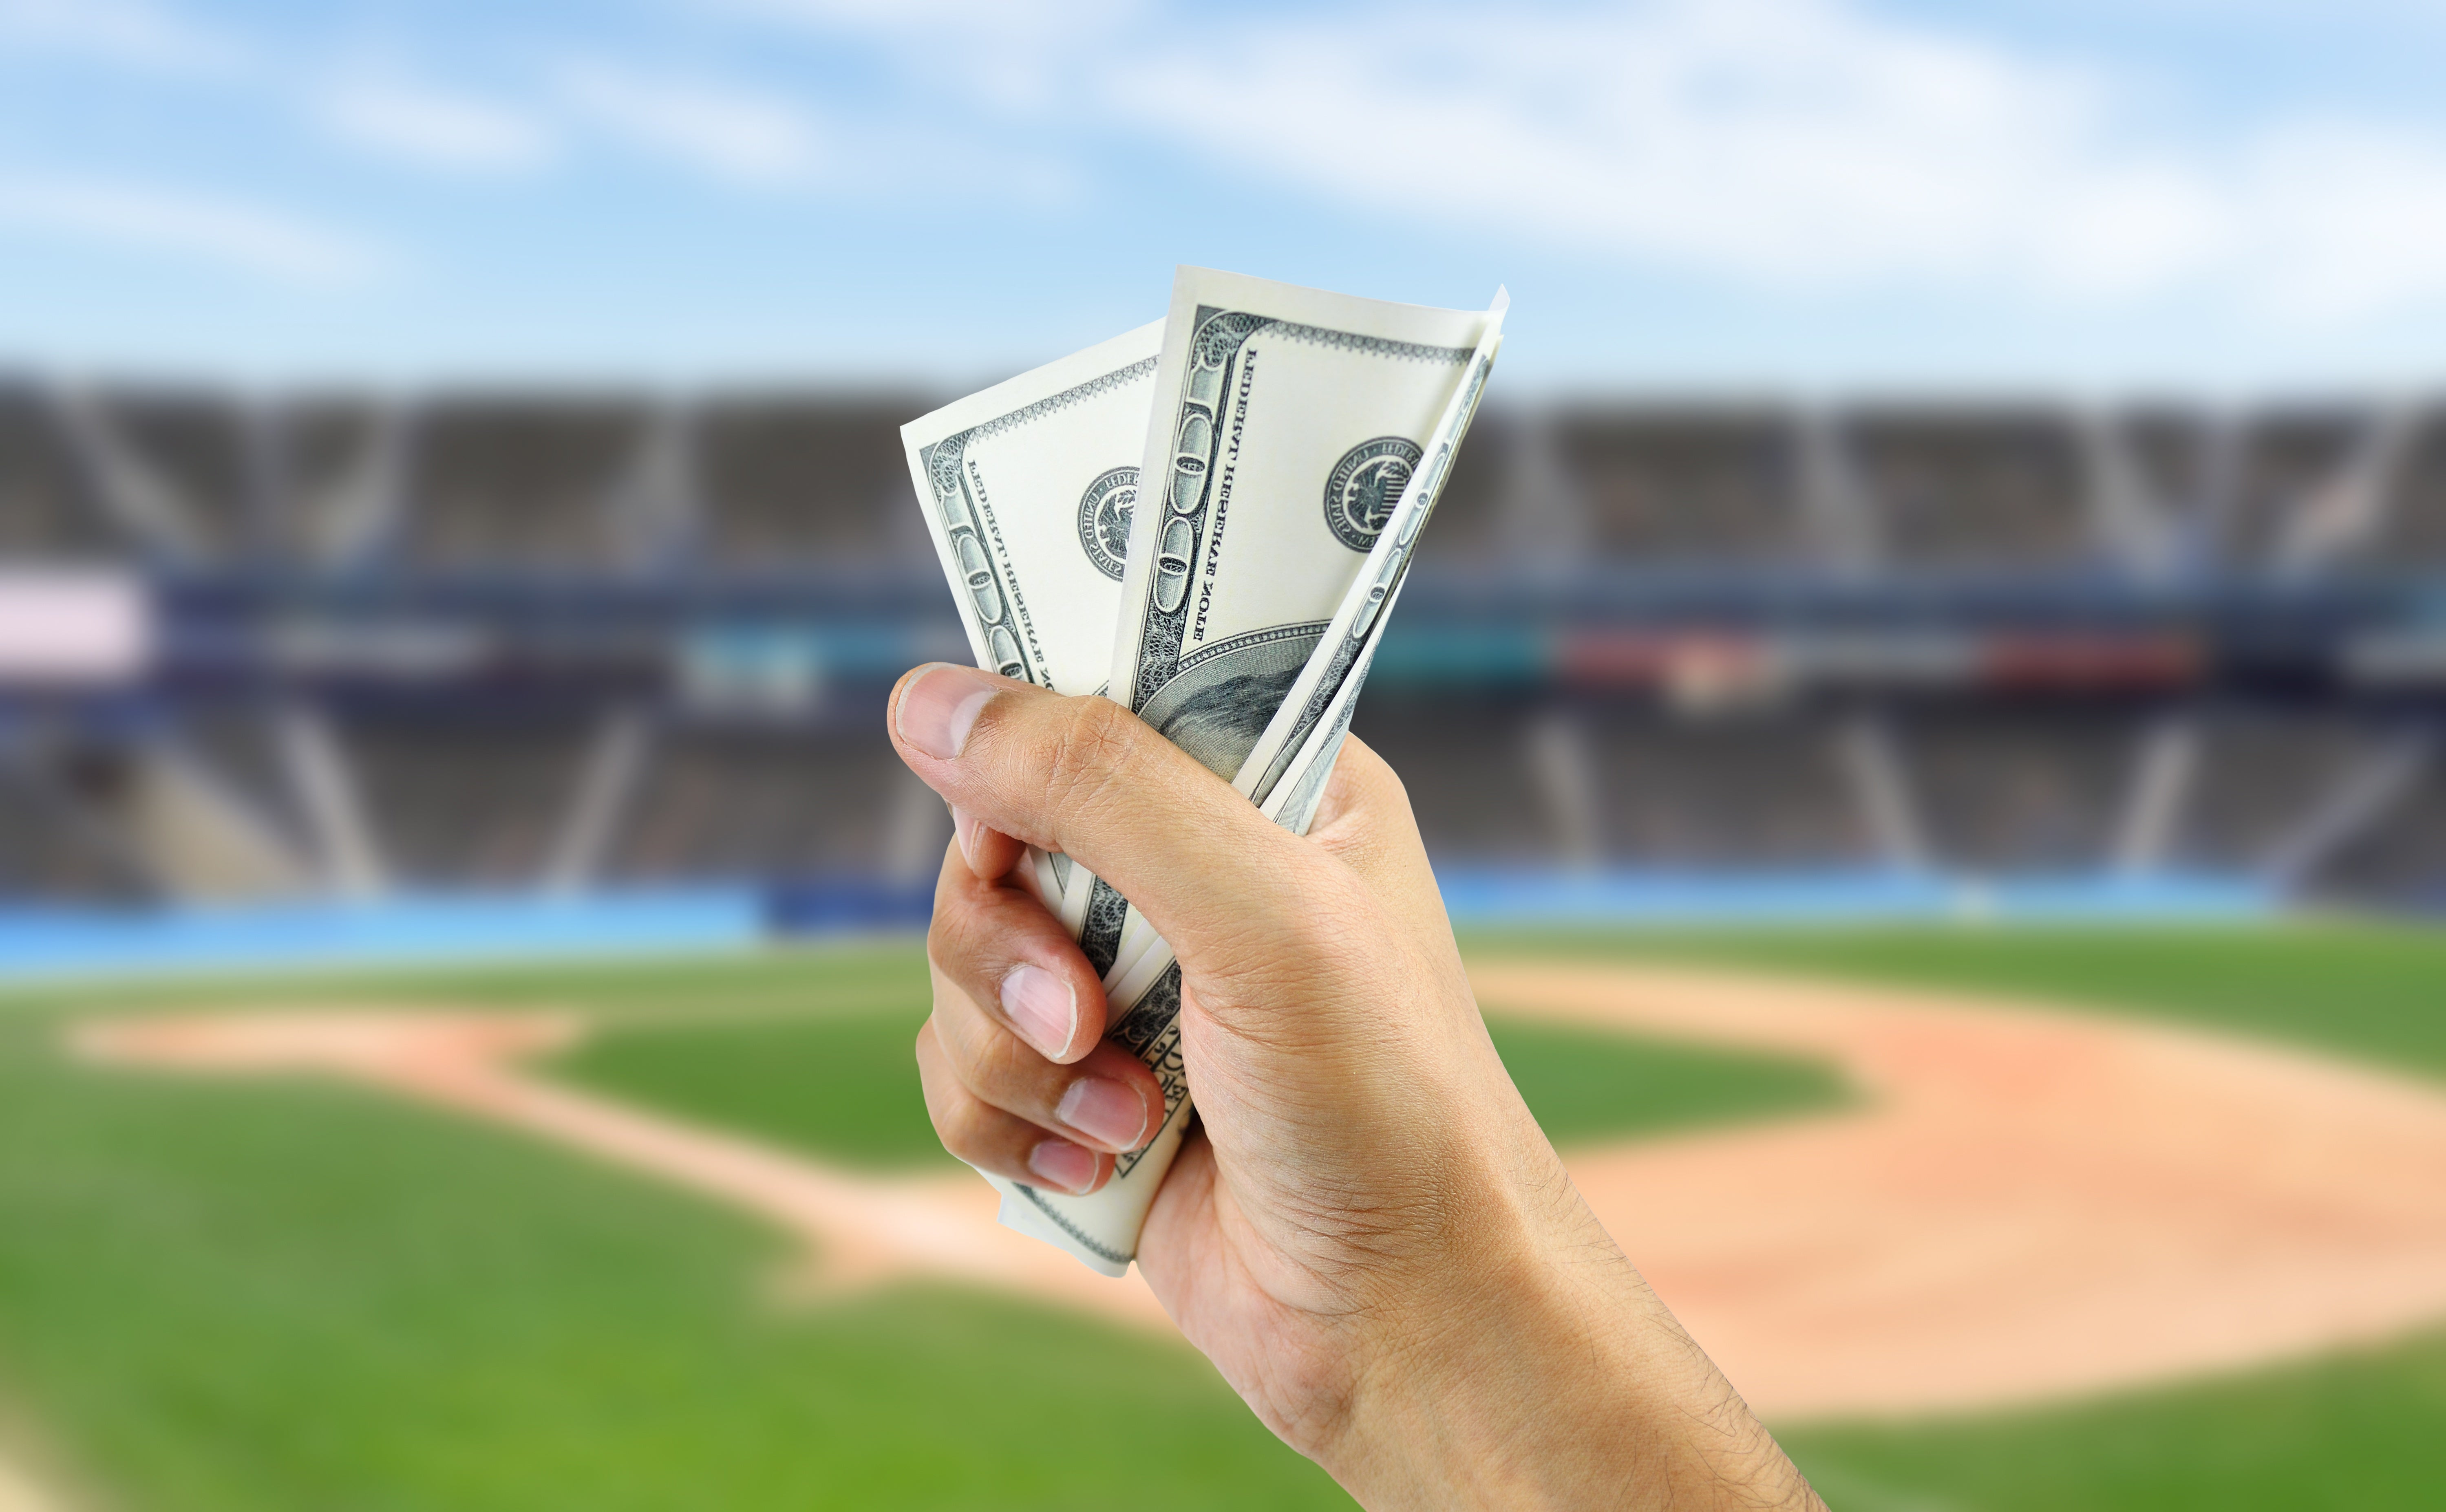 To Win a Sports Bet, Don't Think Too Much - Scientific American